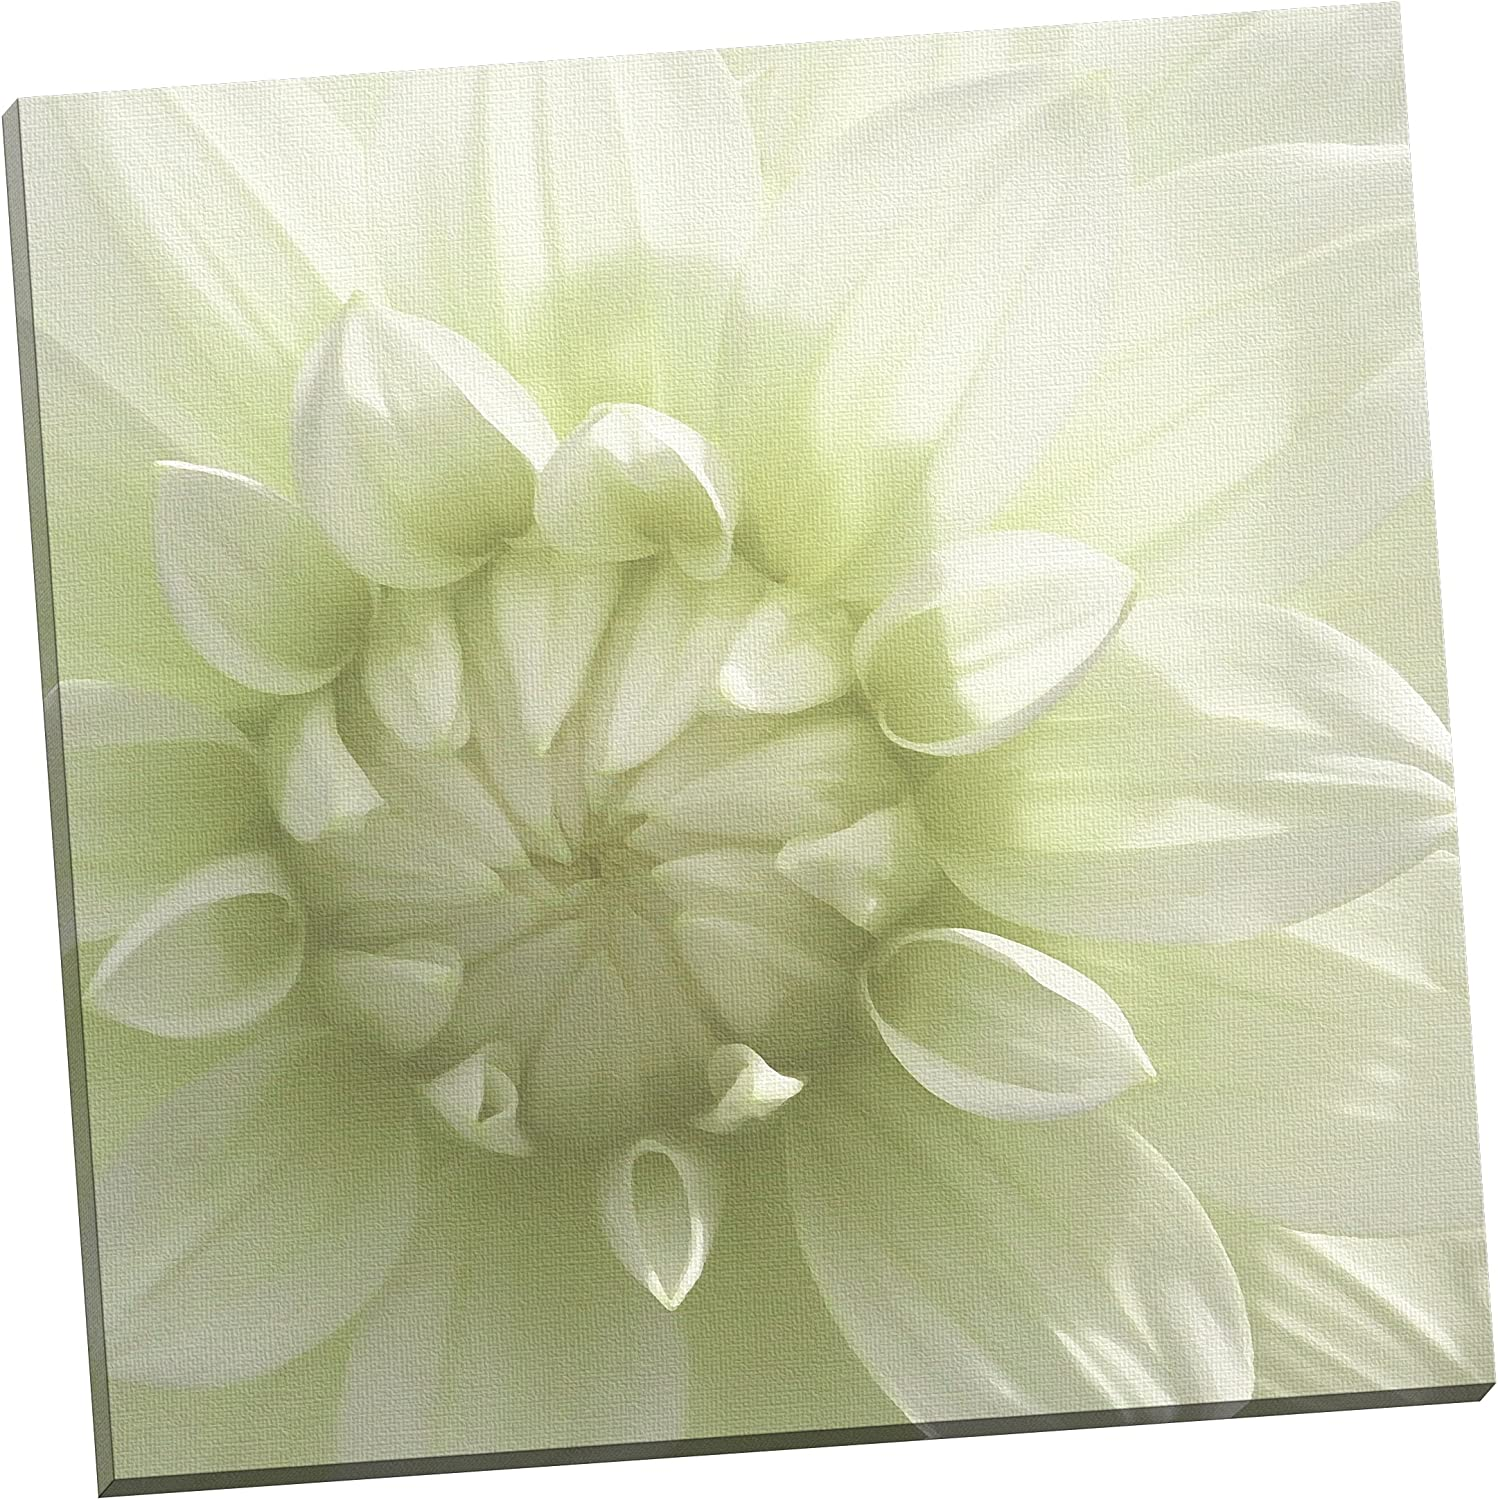 Portfolio Canvas Décor White Blossom III  by Mary Campanga Wrapped and Stretched Canvas Wall Art, 24 by 24Inch